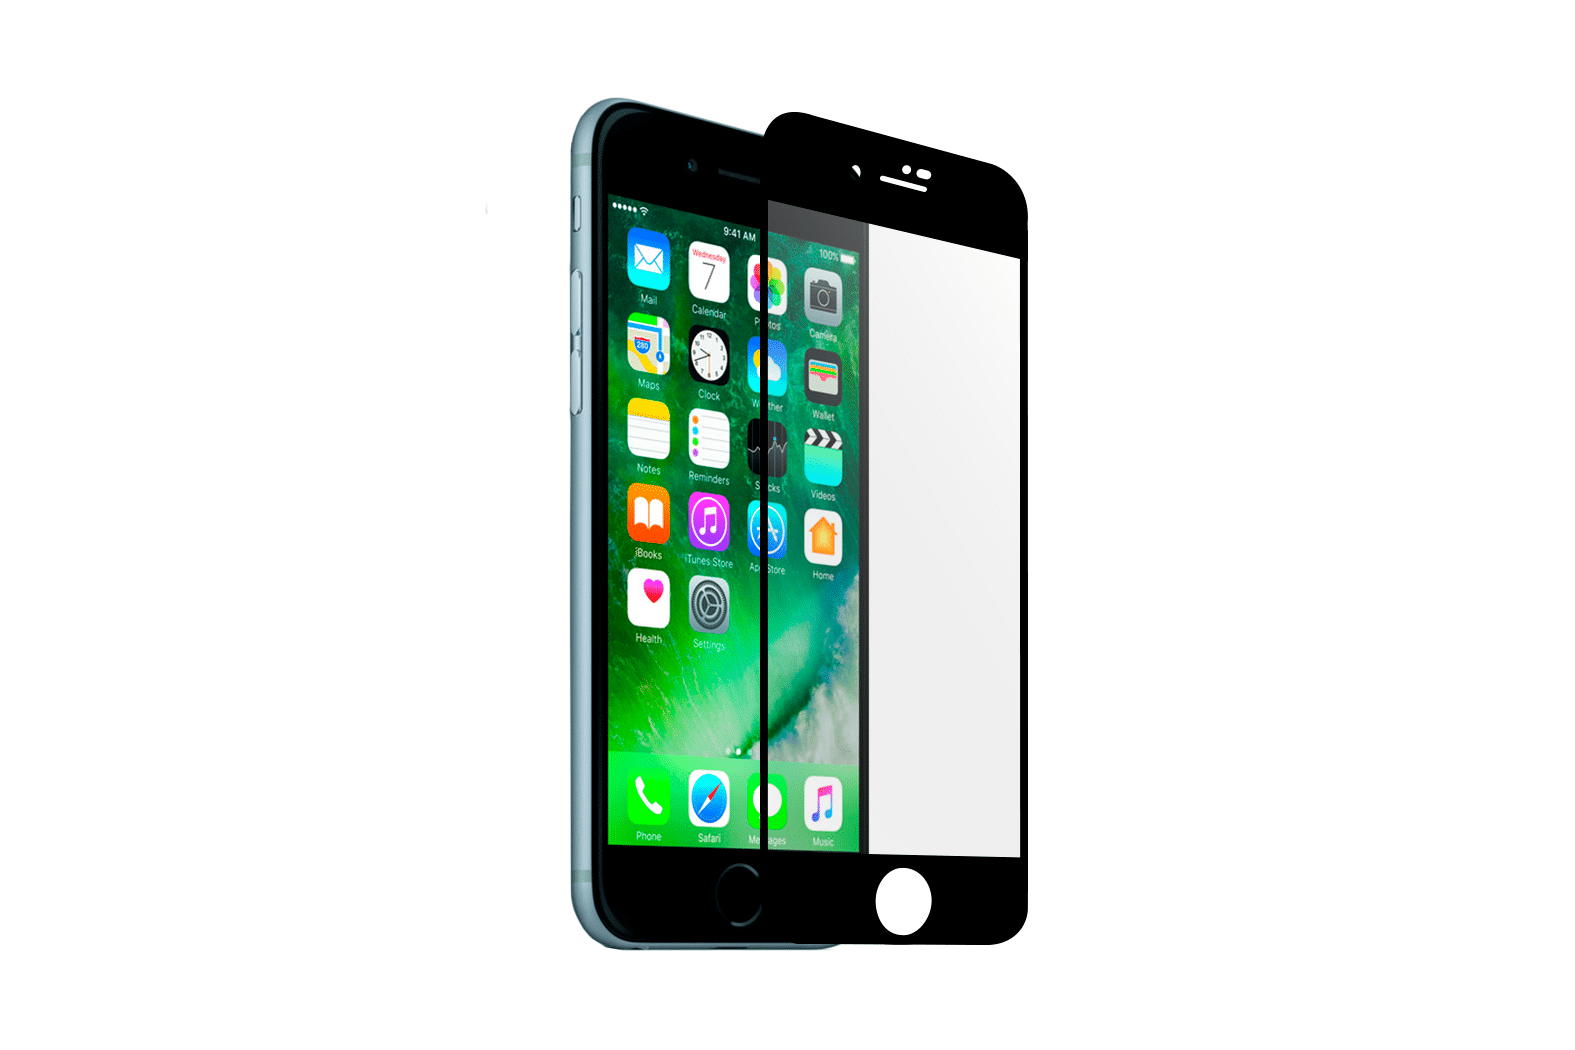 351270_iPhone_6_6S_Fullsize_Full_Size_3D_Beskyttelses_glas_Panser_Panzer_Tempered_Glass_Sort_OneRepair_00001.jpg